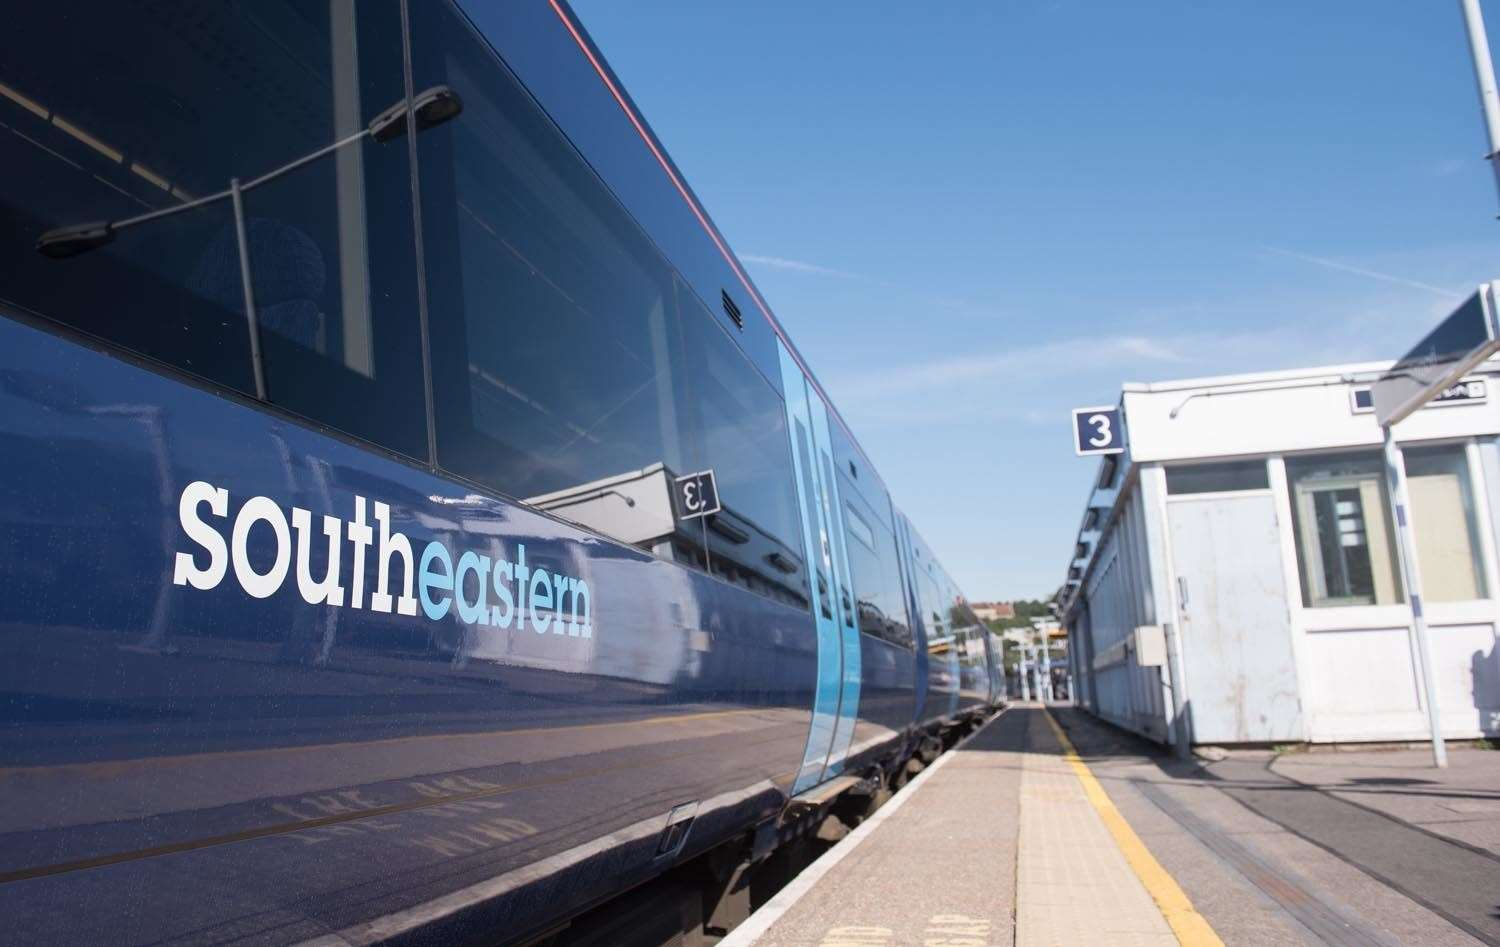 Trains have been cancelled between Faversham and Dover Priory